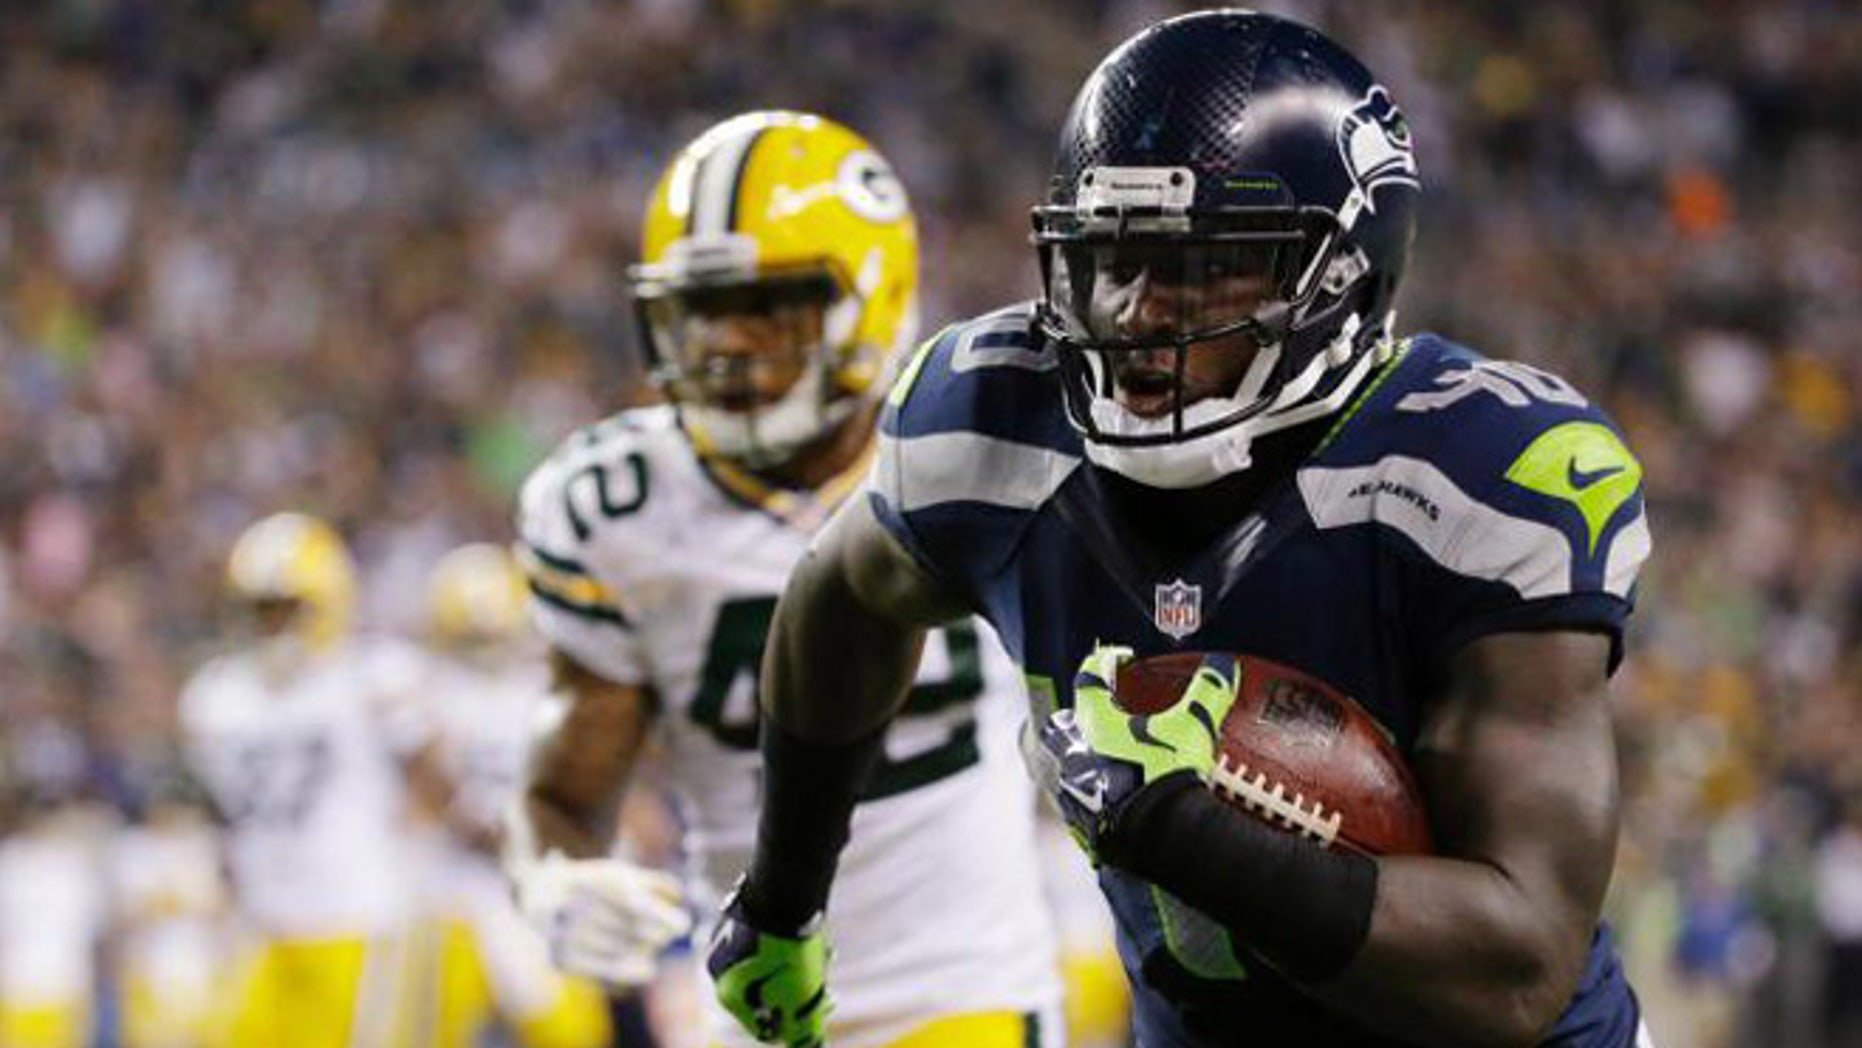 In this Sept. 4, 2014, photo, Seattle Seahawks fullback Derrick Coleman, right, runs for a touchdown in the second half of an NFL football game against the Green Bay Packers in Seattle.(AP Photo/Elaine Thompson)